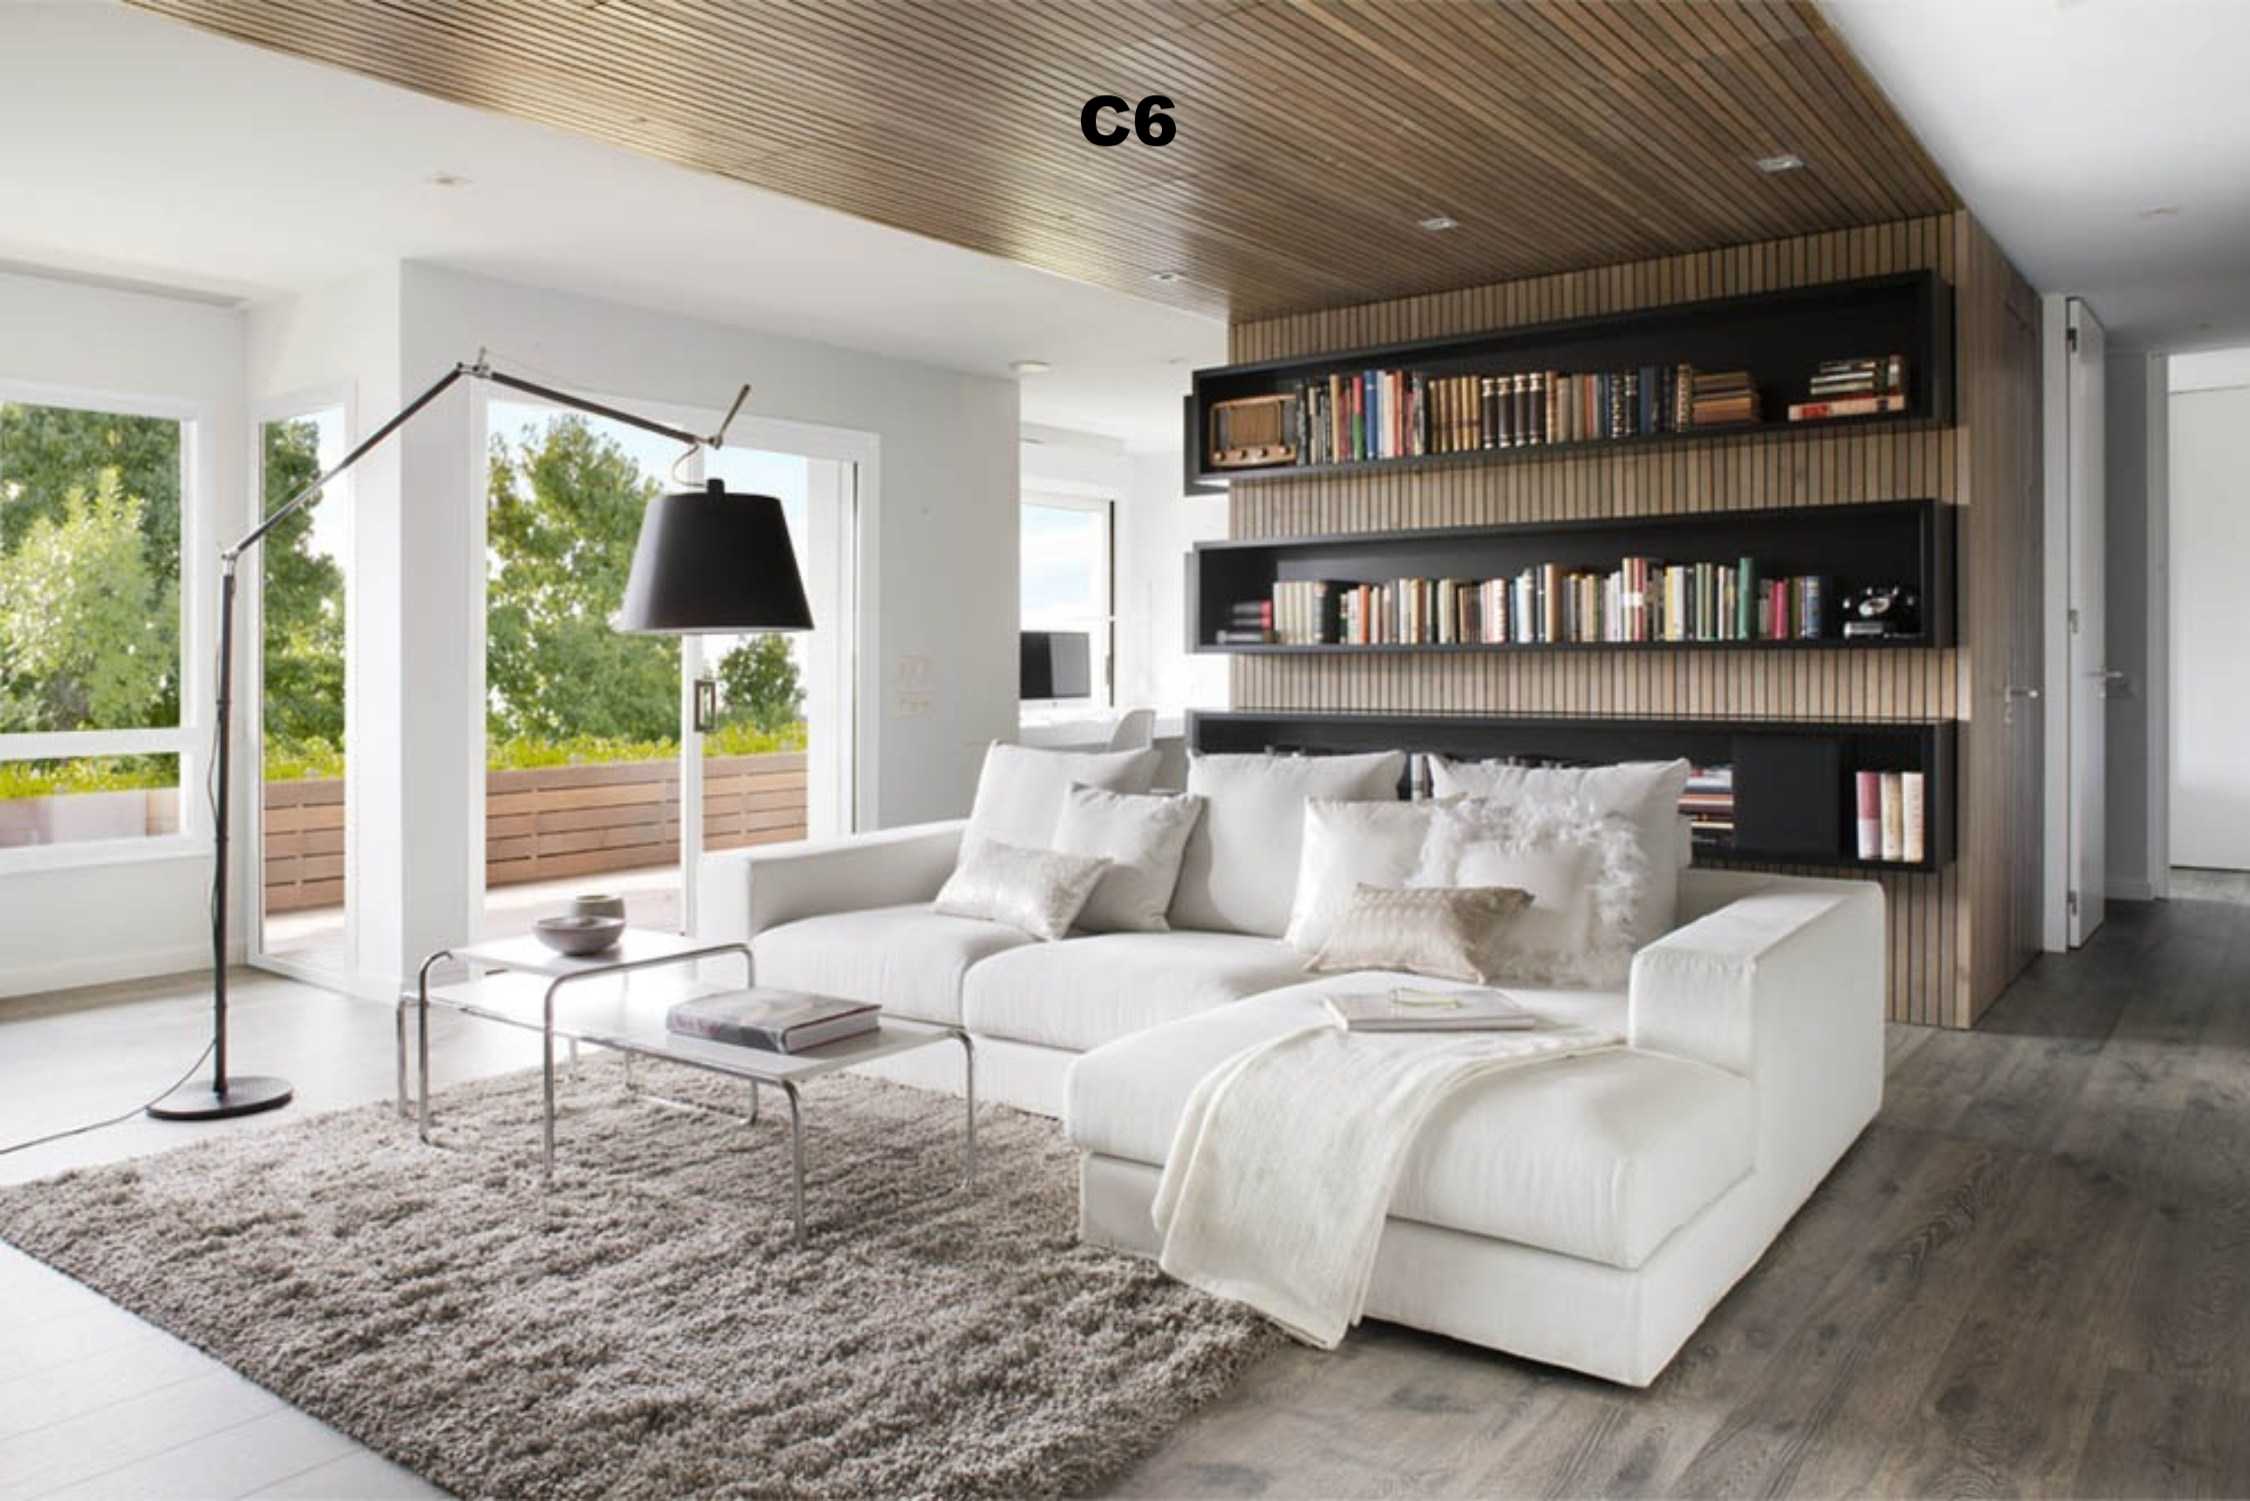 adorable-interior-wooden-house-full-imagas-and-white-wall-modern-with-shelves-can-add-the-natural_inside-wooden-houses_home-decor_inexpensive-home-decor-target-walmart-decorators-coupon-code-decoratin.jpg